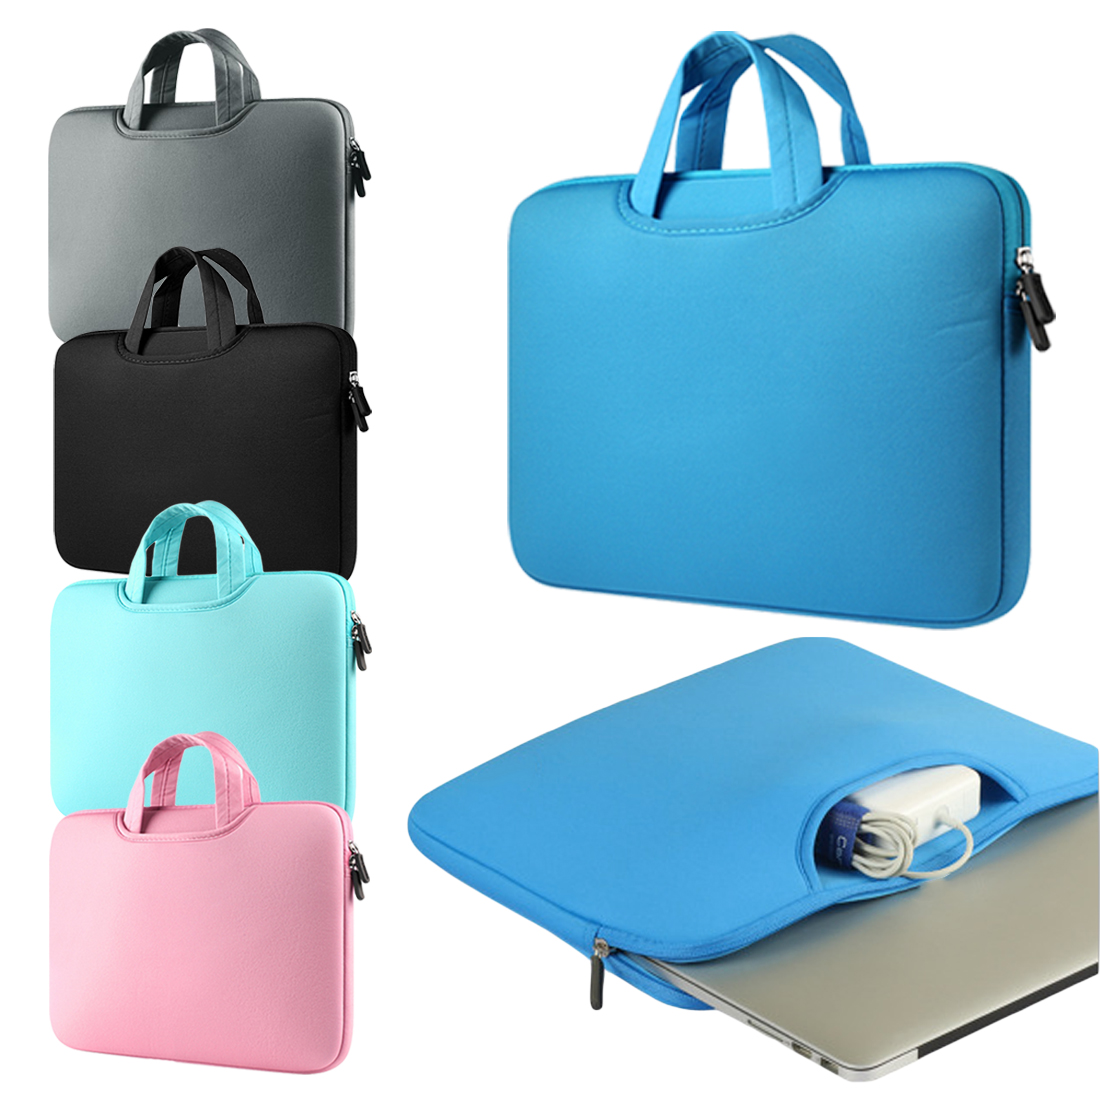 Laptop Sleeve 11.6 13.3 15.4 15.6 Inch Notebook Bag 13.3 For MacBook Air Pro 13 Case Laptop Bag 11,13,15 Inch Protective Case